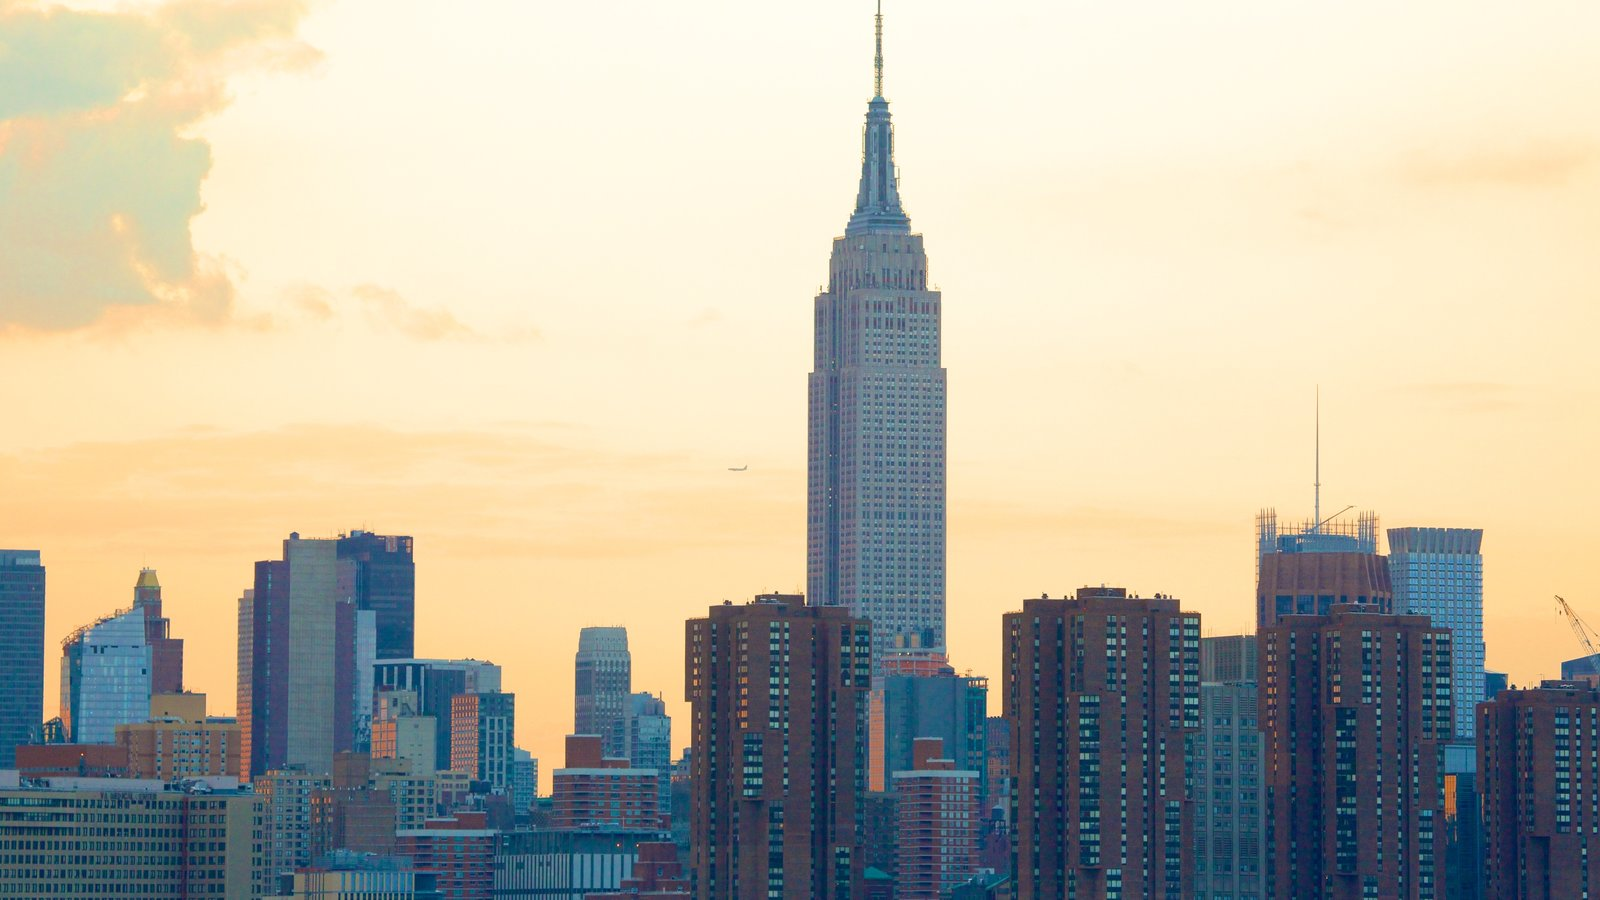 Empire State Building showing a city, a sunset and skyline